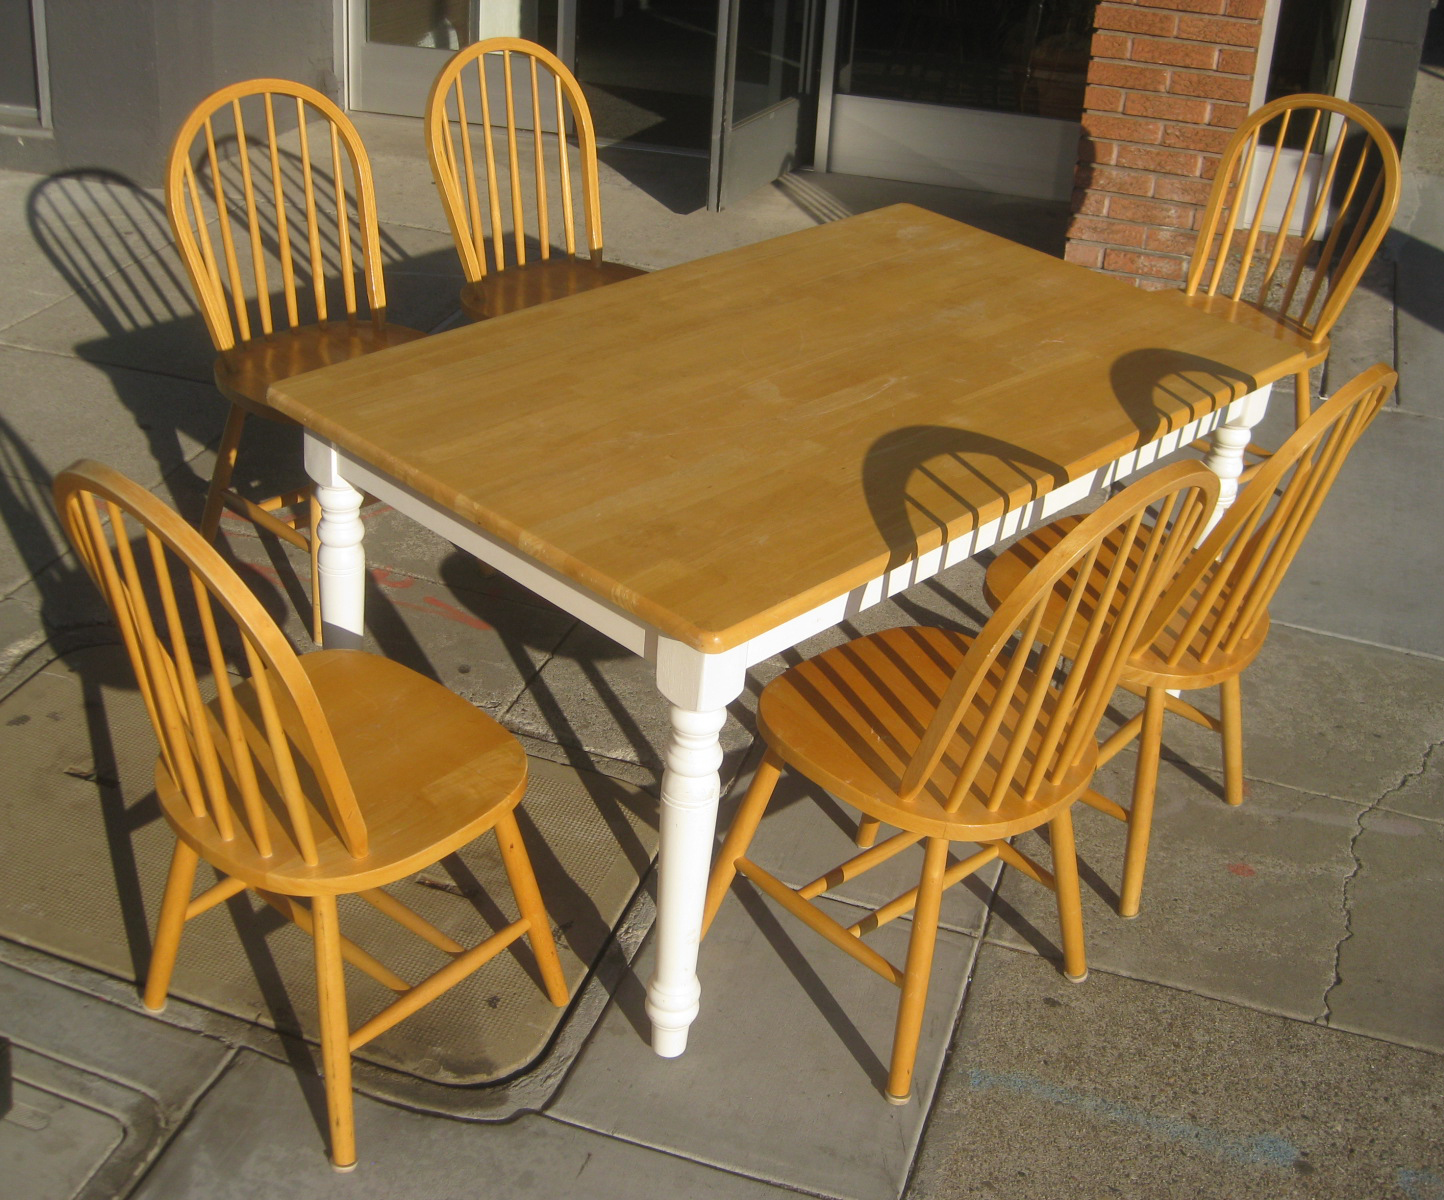 Kitchen Table Seats 10 Uhuru Furniture And Collectibles Sold Kitchen Table And